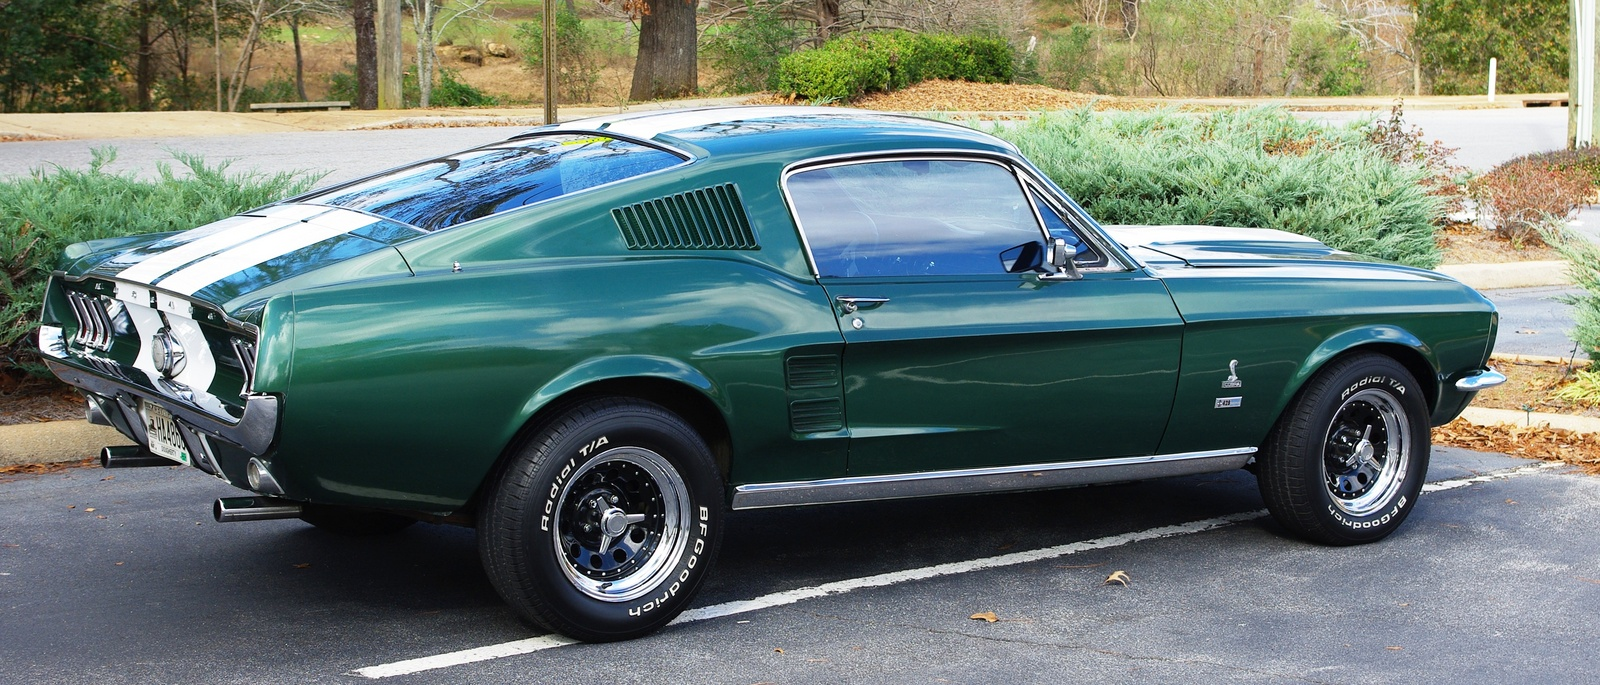 picture of Ford Mustang, 1967, fastback, green, white stripes